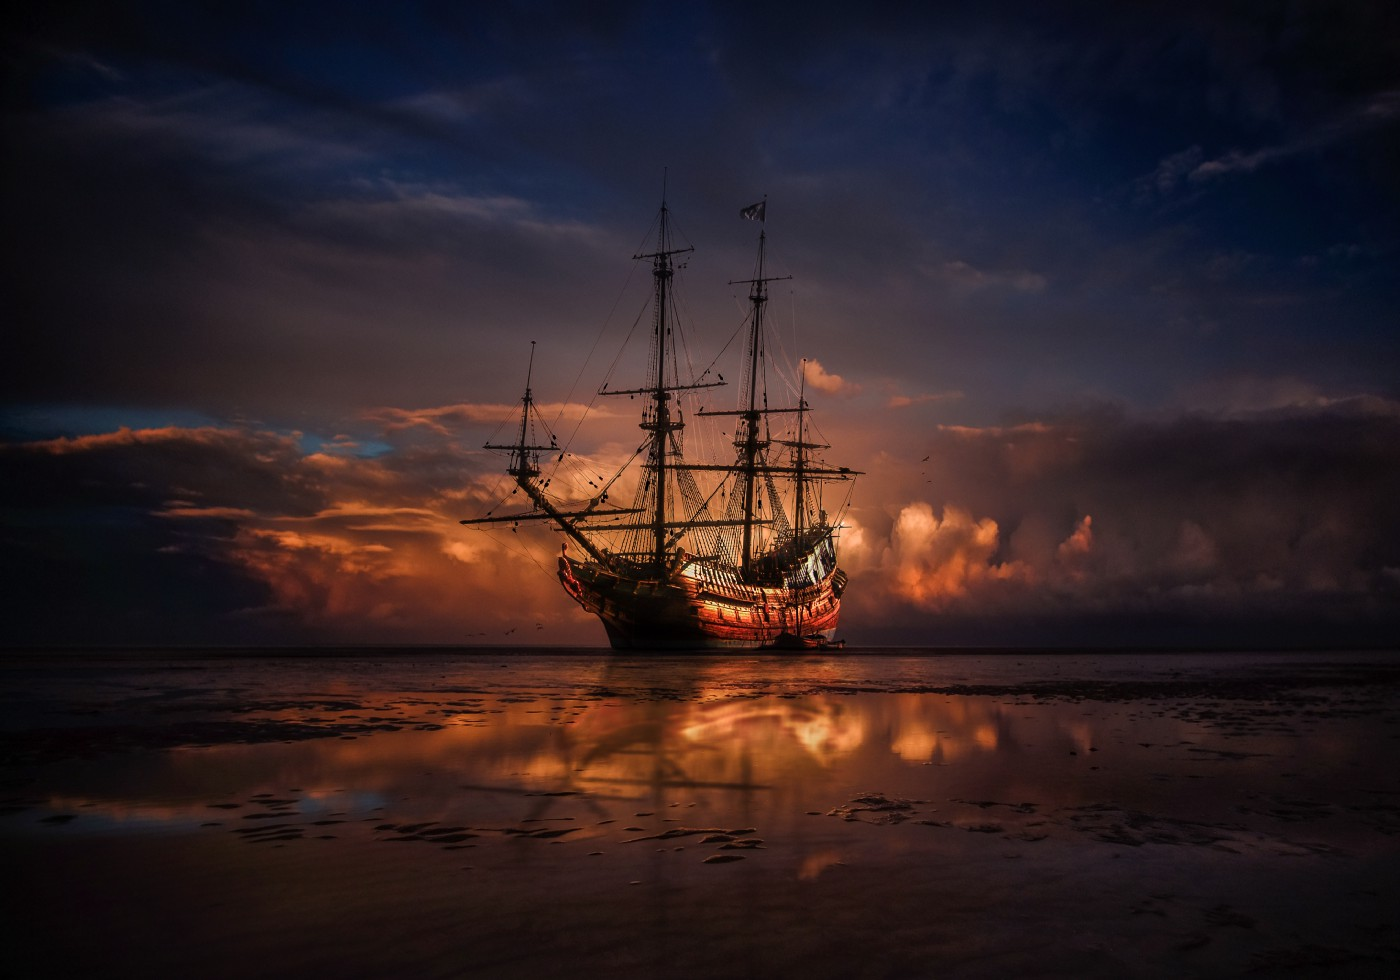 Photo of an ominous looking pirate ship at dusk.